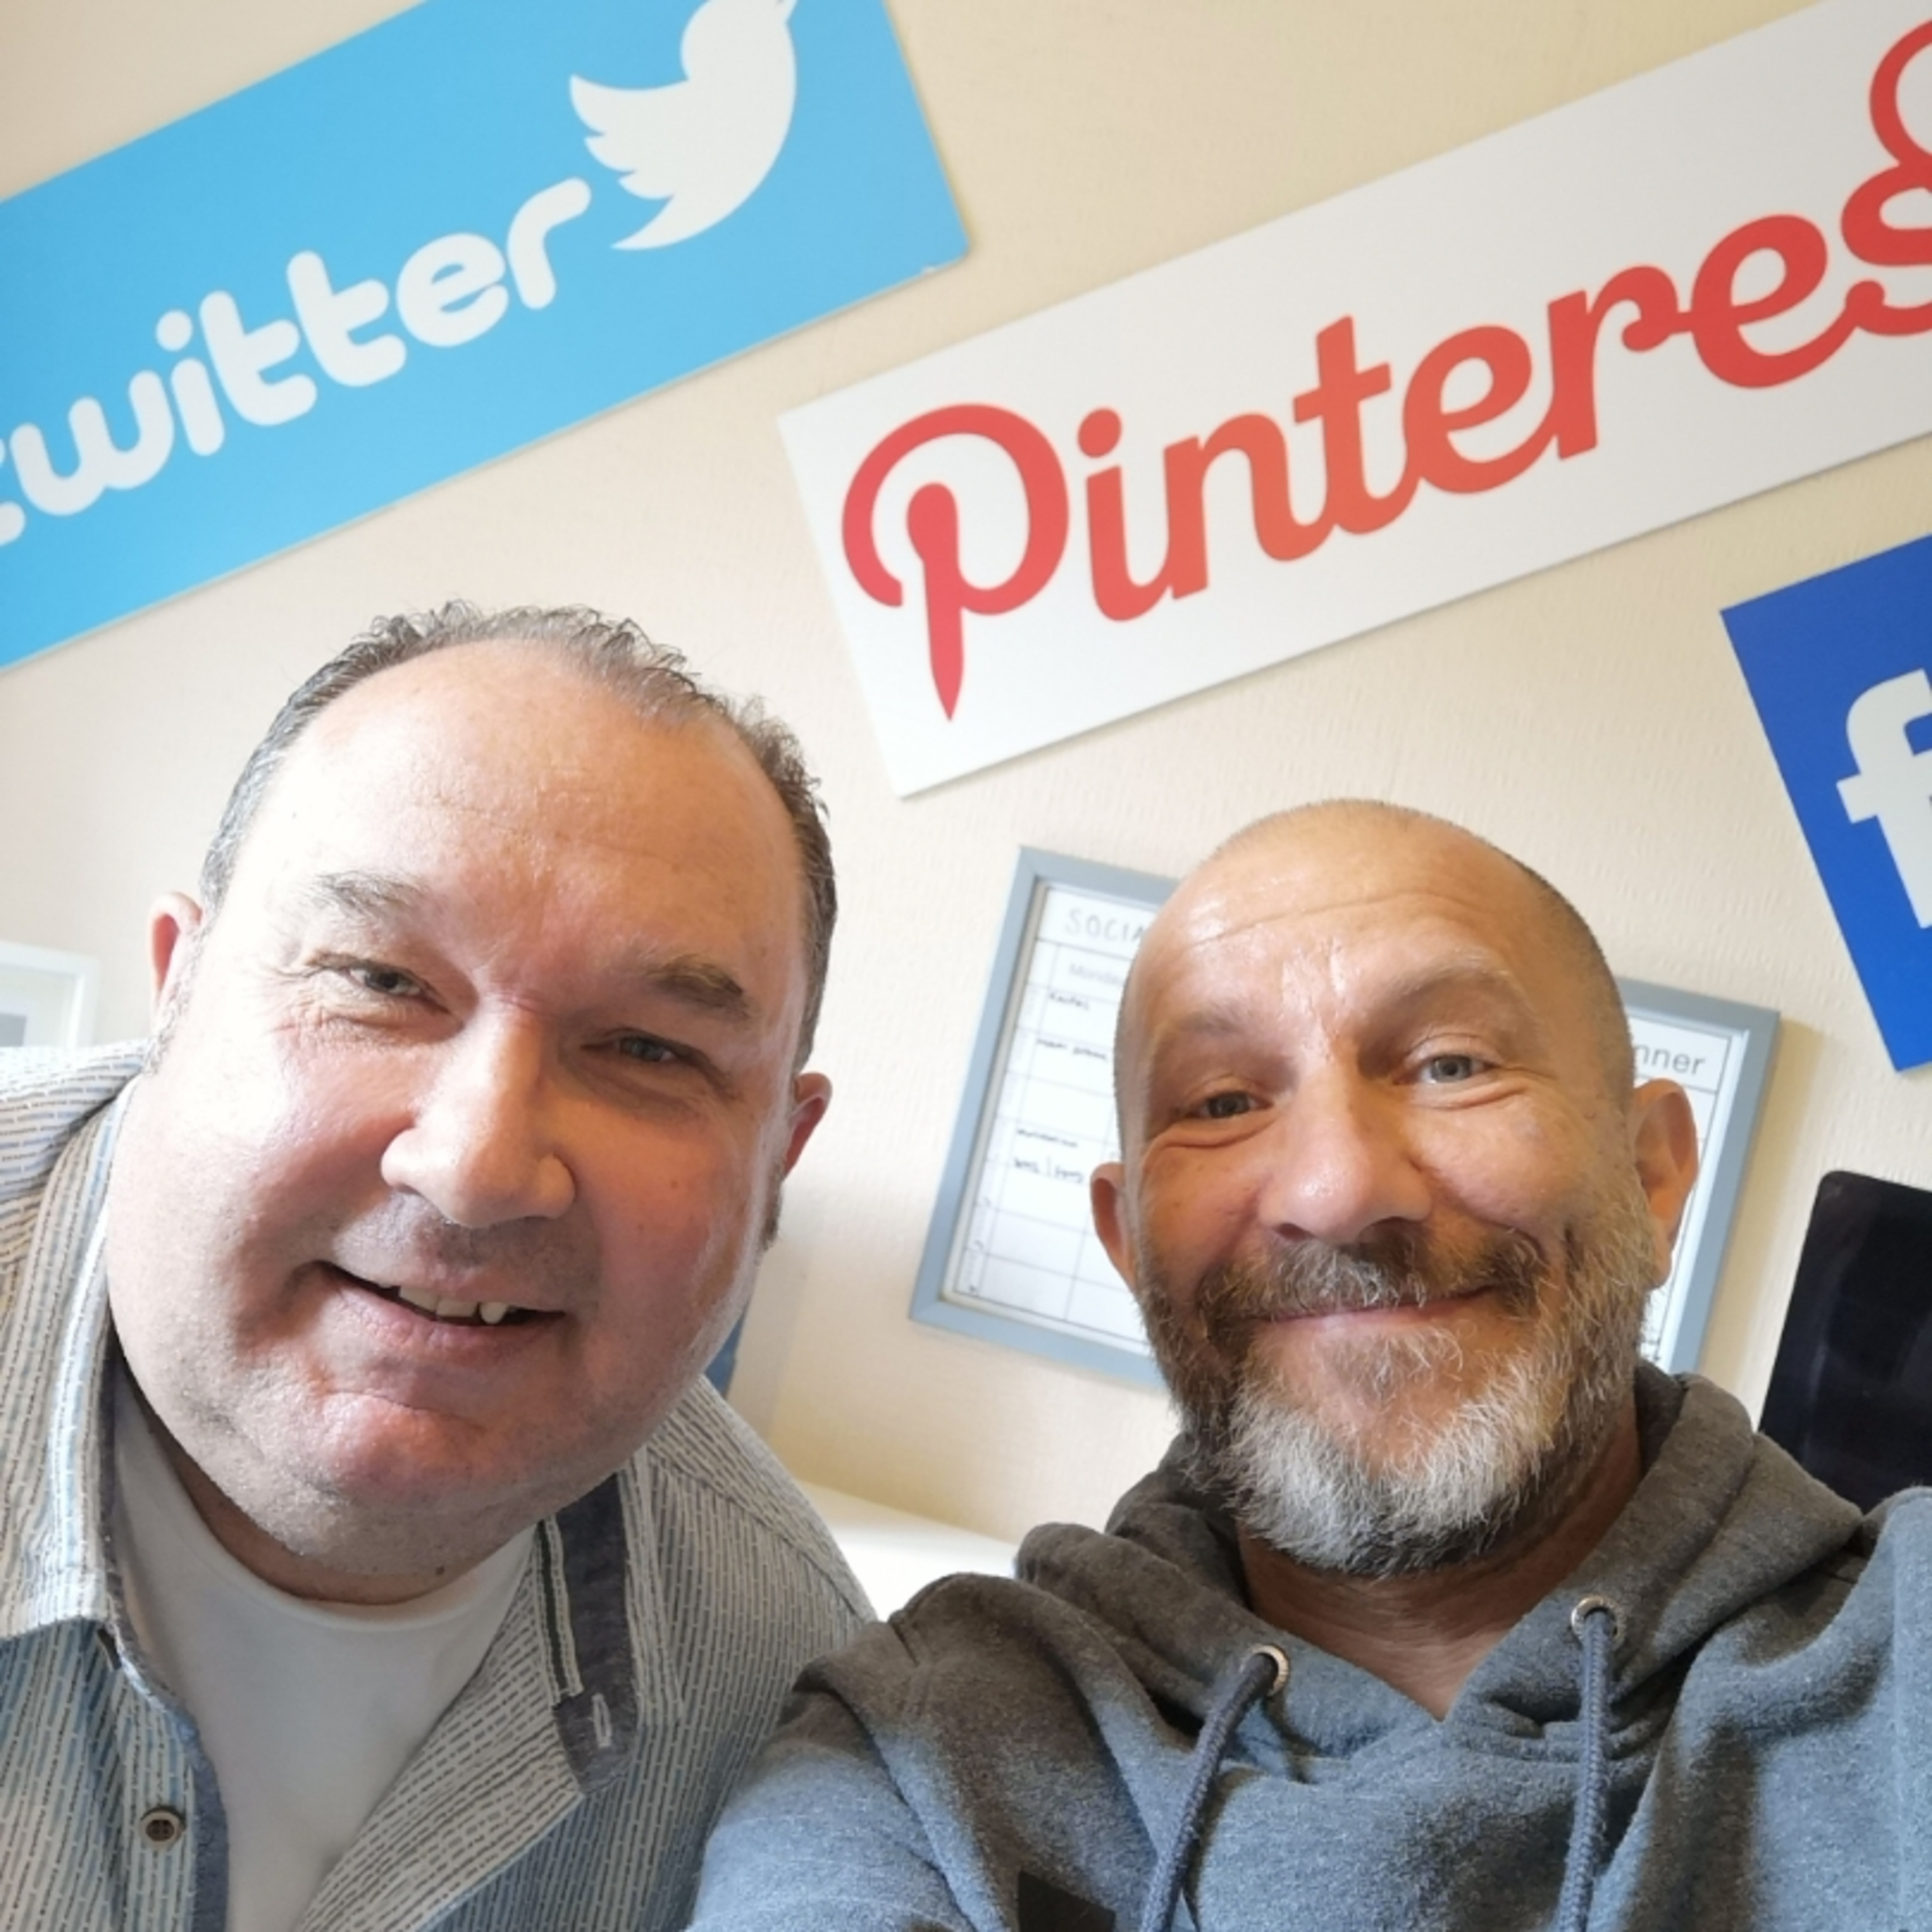 Interview with Paul Wolfenden from The Fair Trade Store, a successful online business